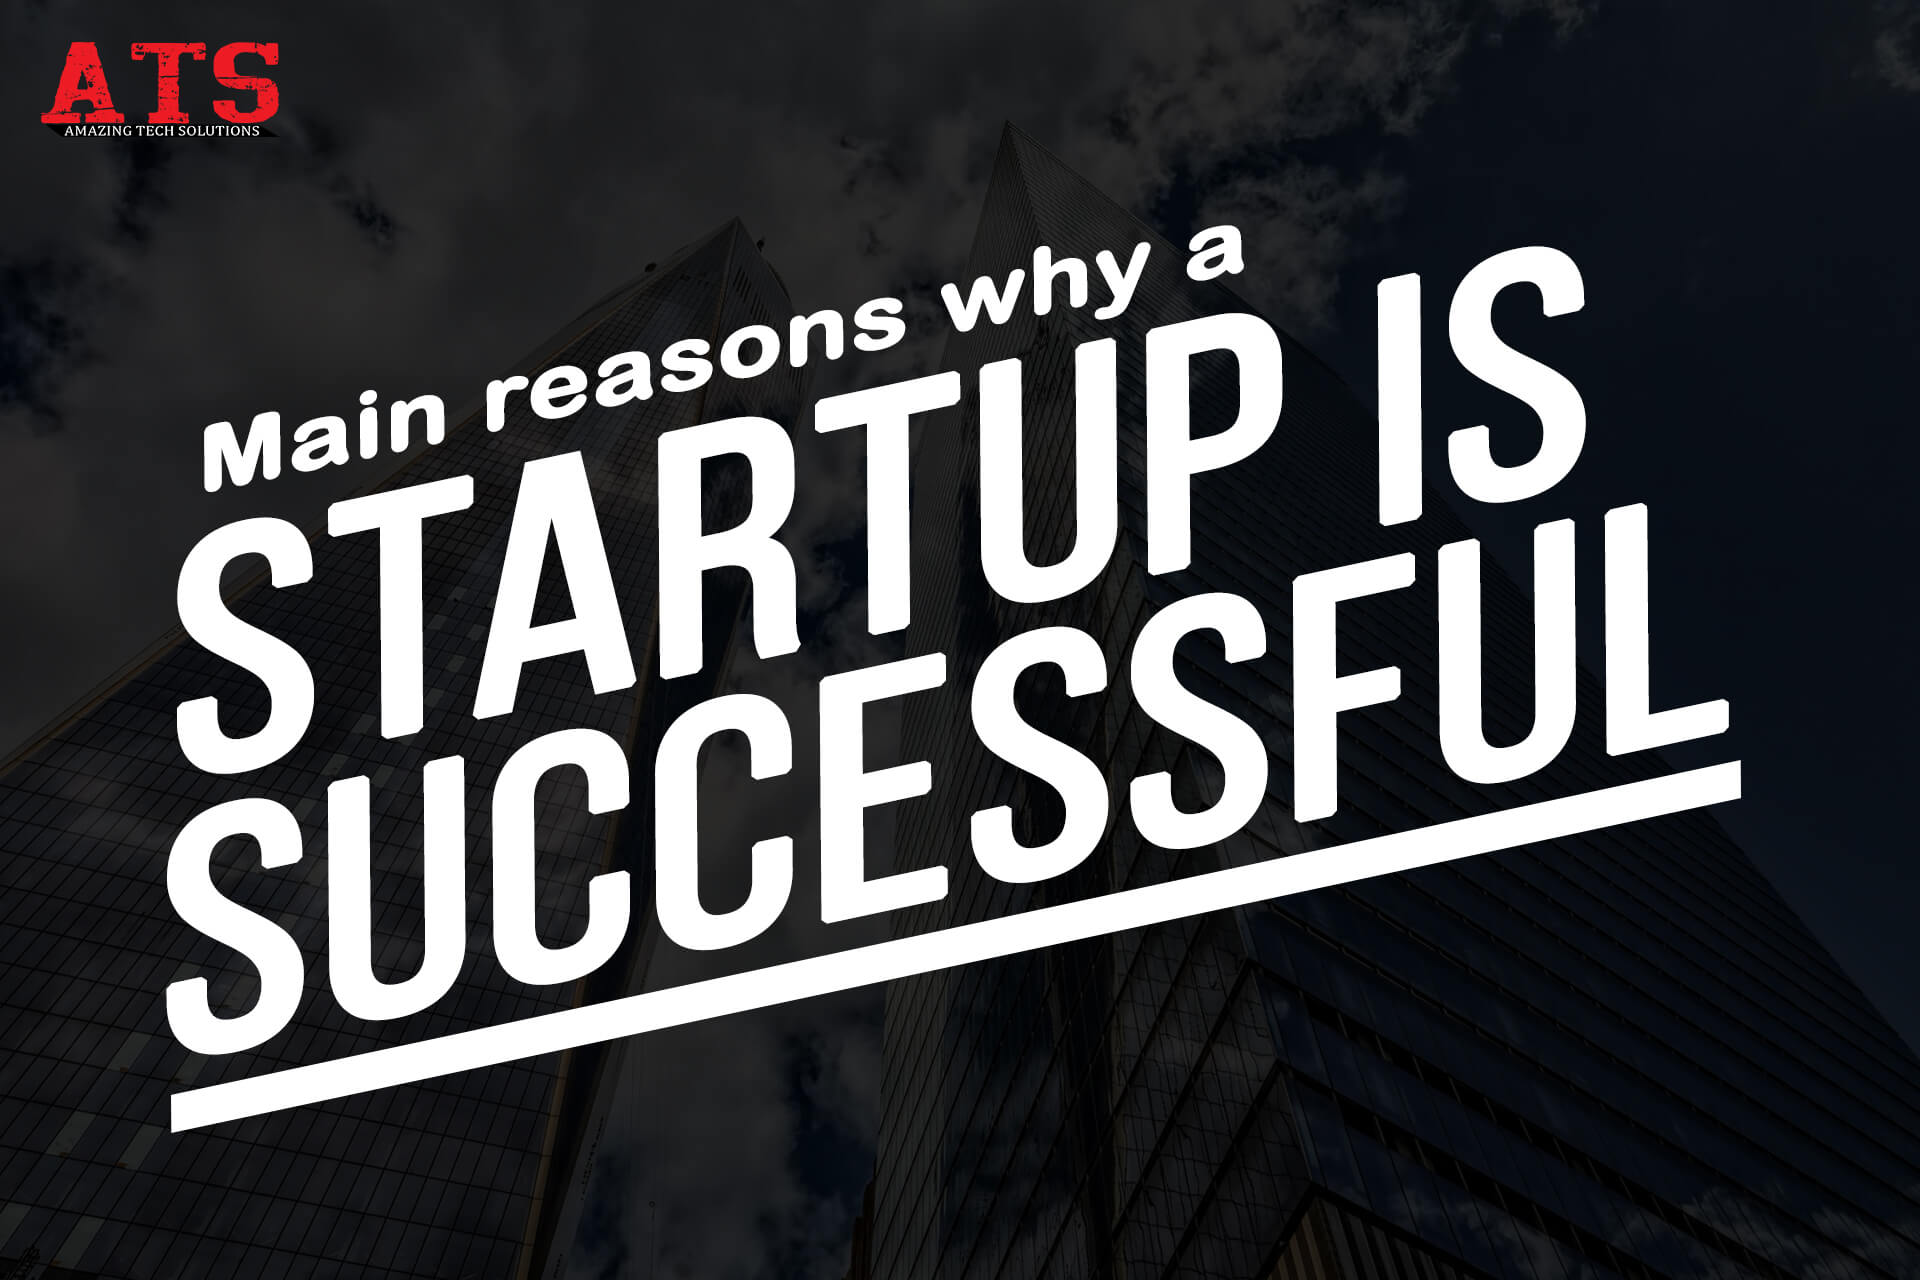 What Are 3 Main Reasons Why A Startup Is Successful?